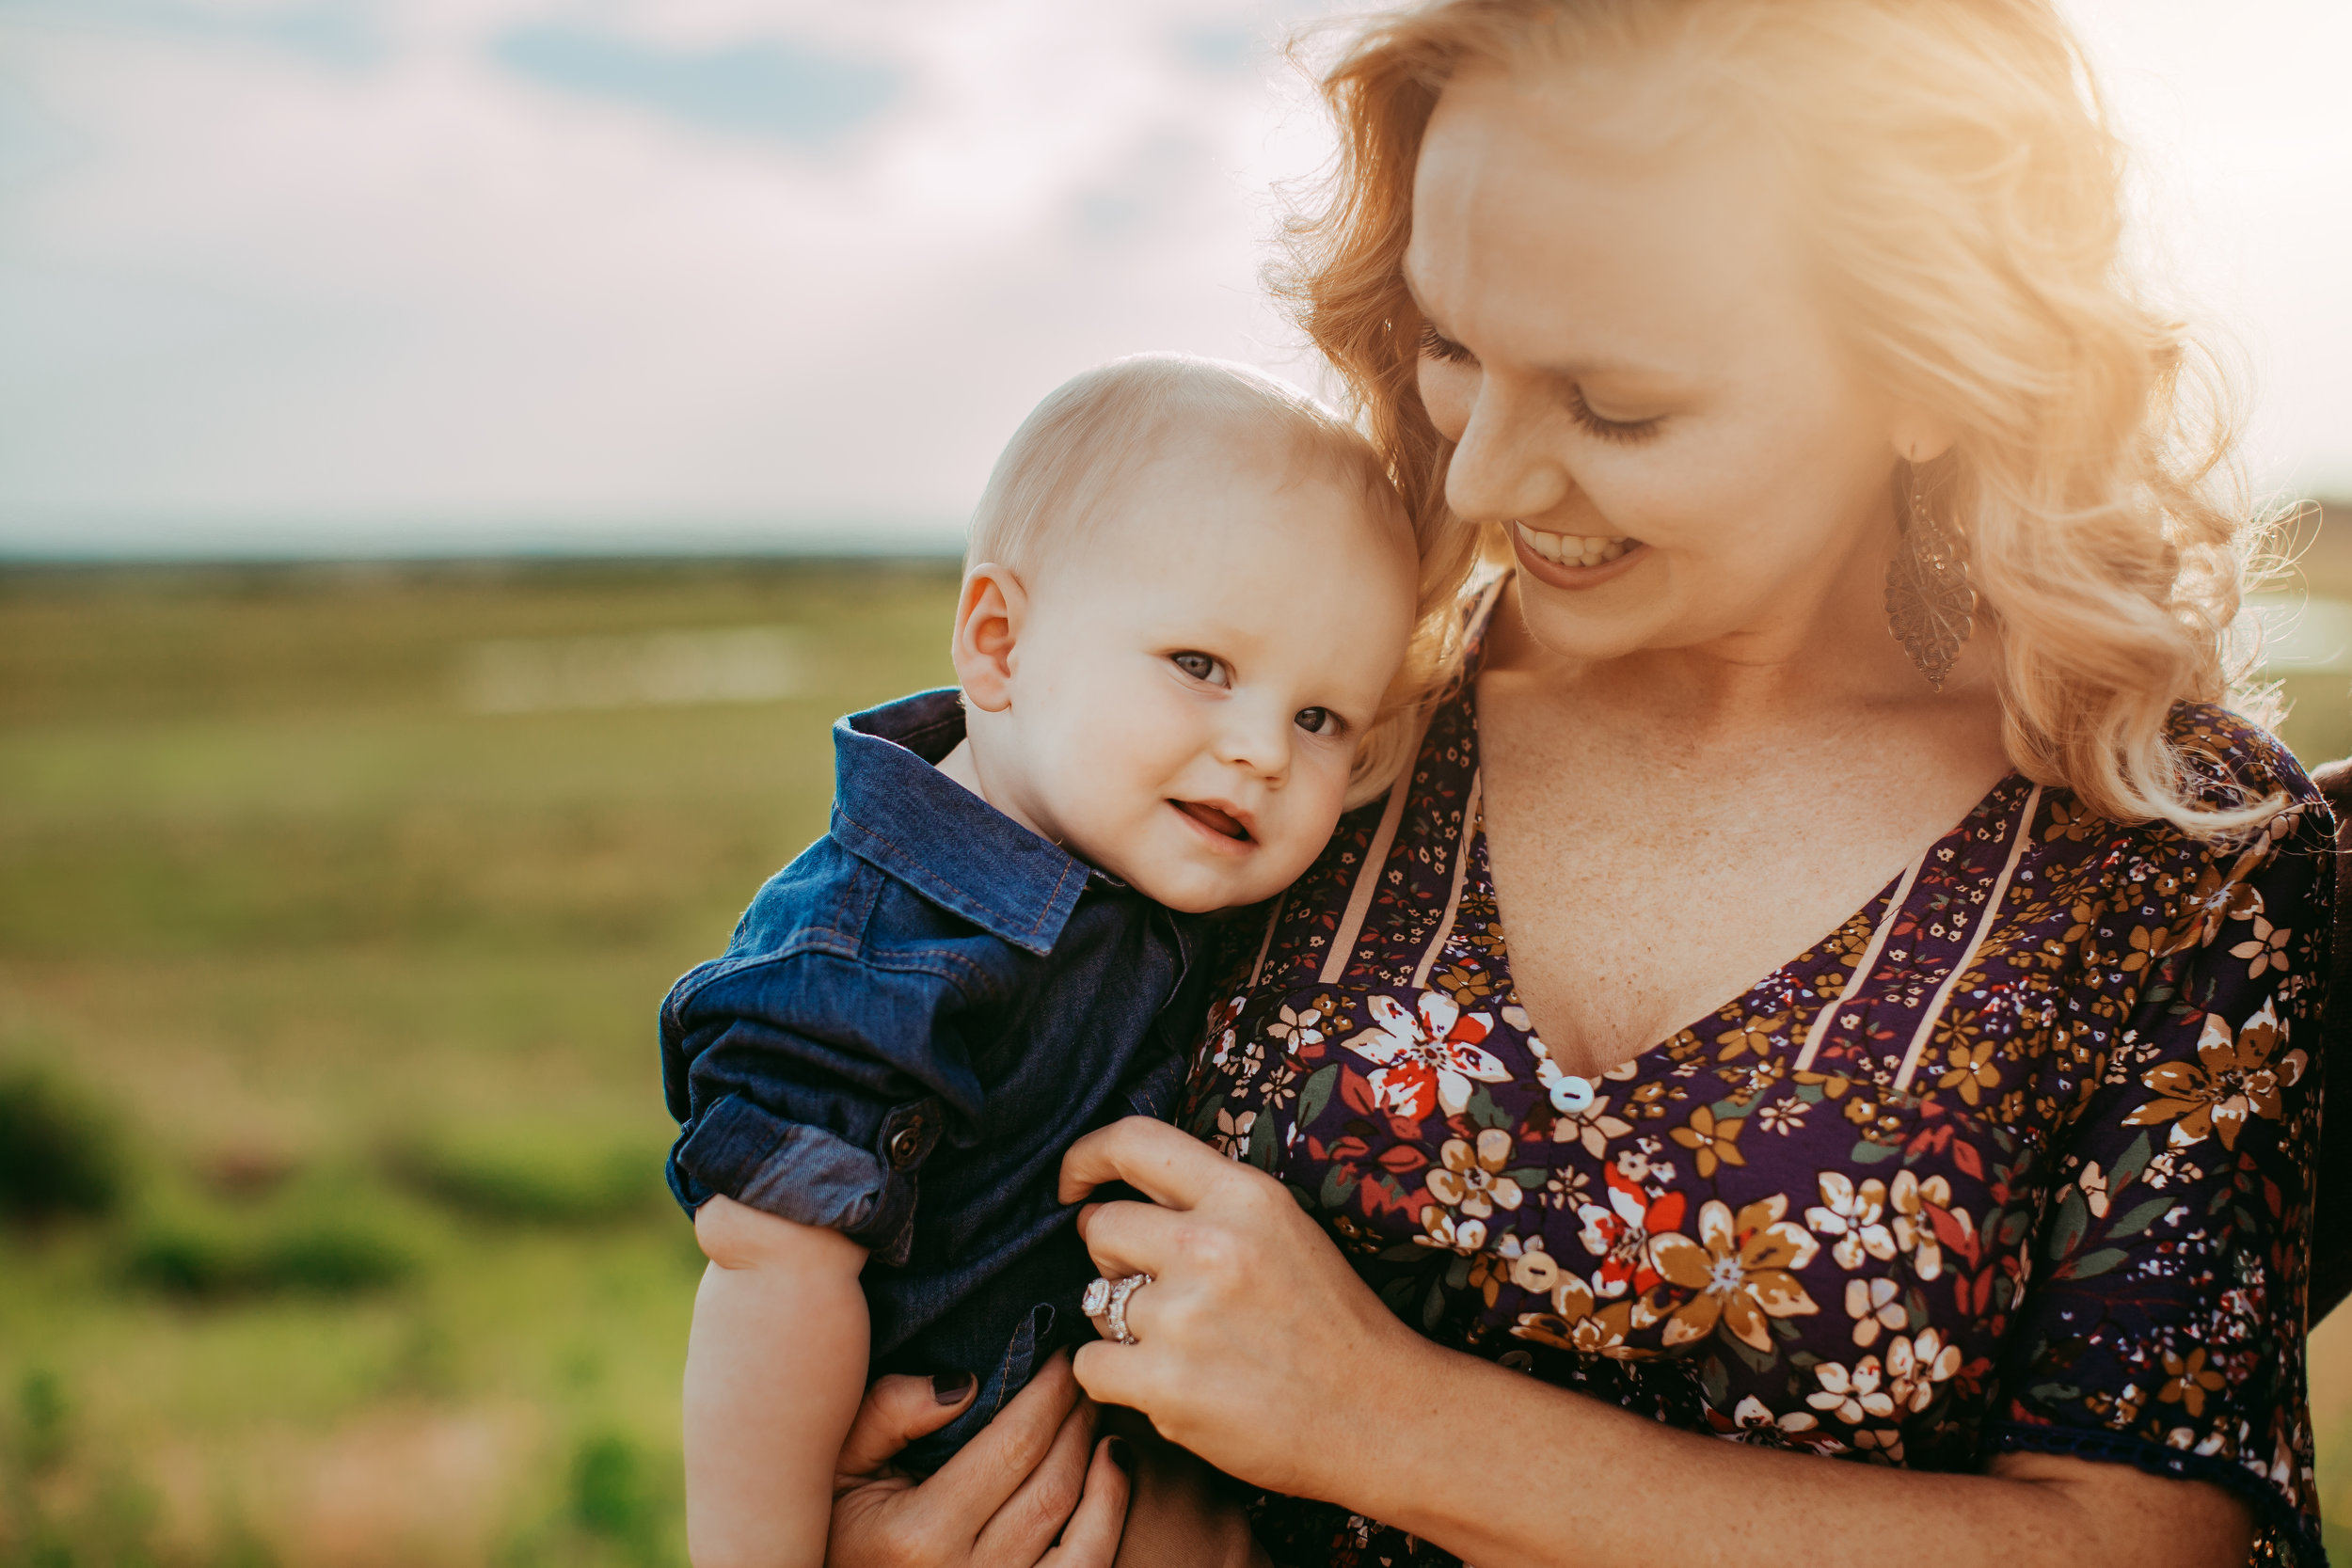 Little boy listening to mom and both smiling with the wind in their hair #tealawardphotography #texasfamilyphotographer #amarillophotographer #amarillofamilyphotographer #lifestylephotography #emotionalphotography #familyphotosoot #family #lovingsiblings #purejoy #familyphotos #familyphotographer #greatoutdoors #unposed #naturalfamilyinteraction